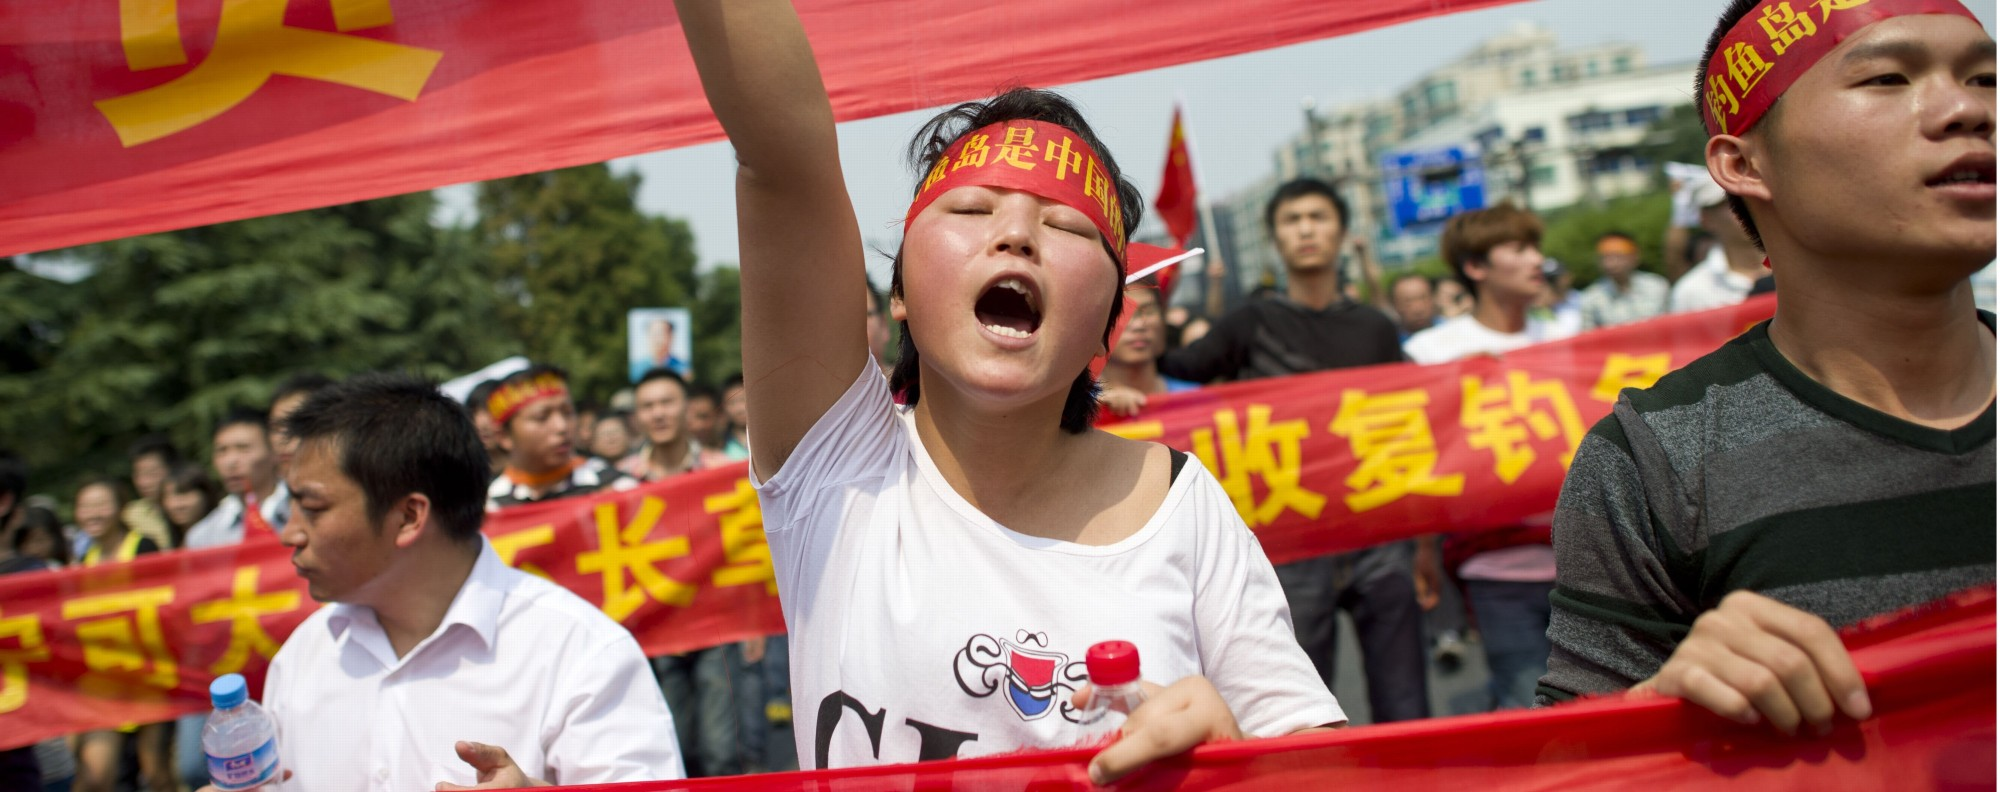 Anti-Japan protesters in China. Photo: AFP